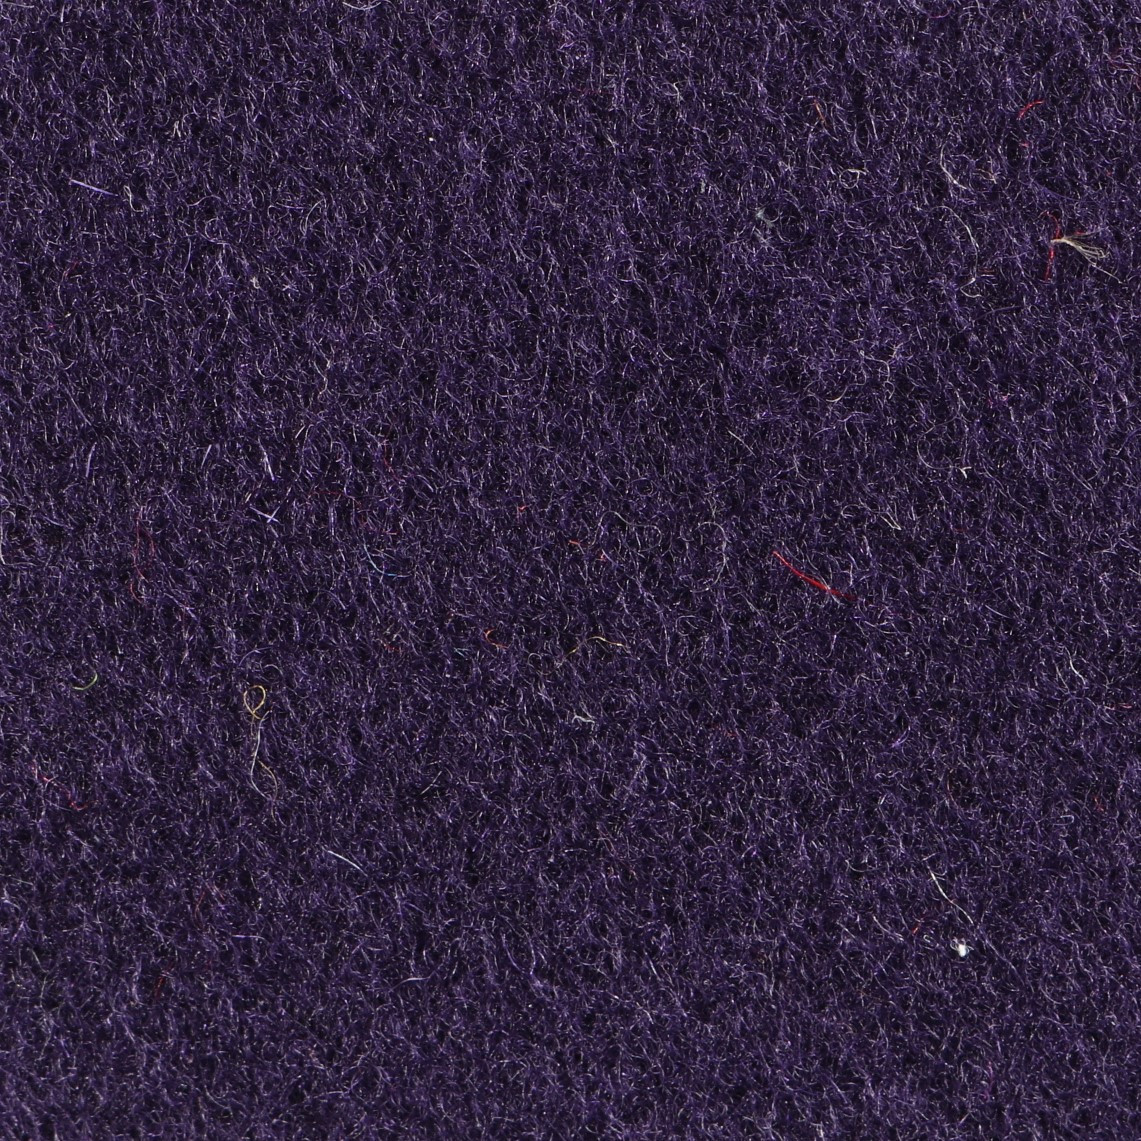 Cashmere Lana A-13 DARK PURPLE